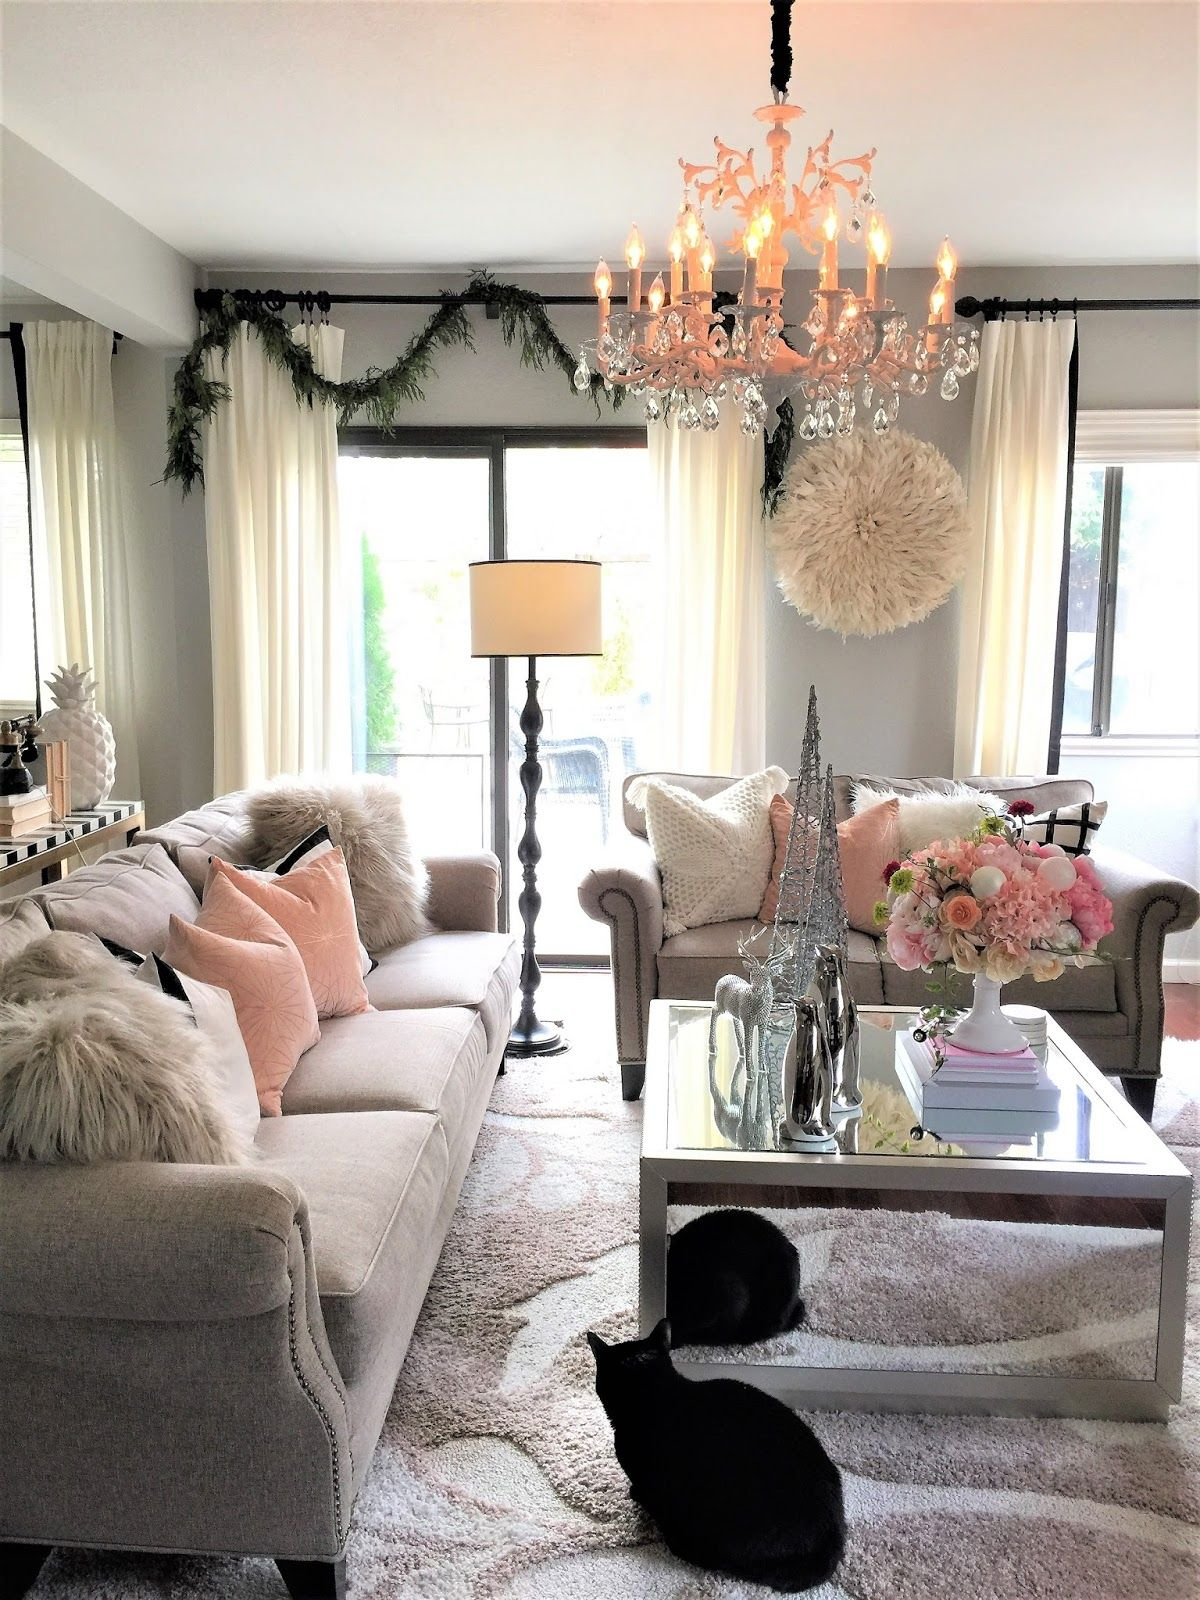 fabulous living room swingland nod for hom | HOME FOR THE HOLIDAYS BLOG TOUR HOME & FABULOUS STYLE ...